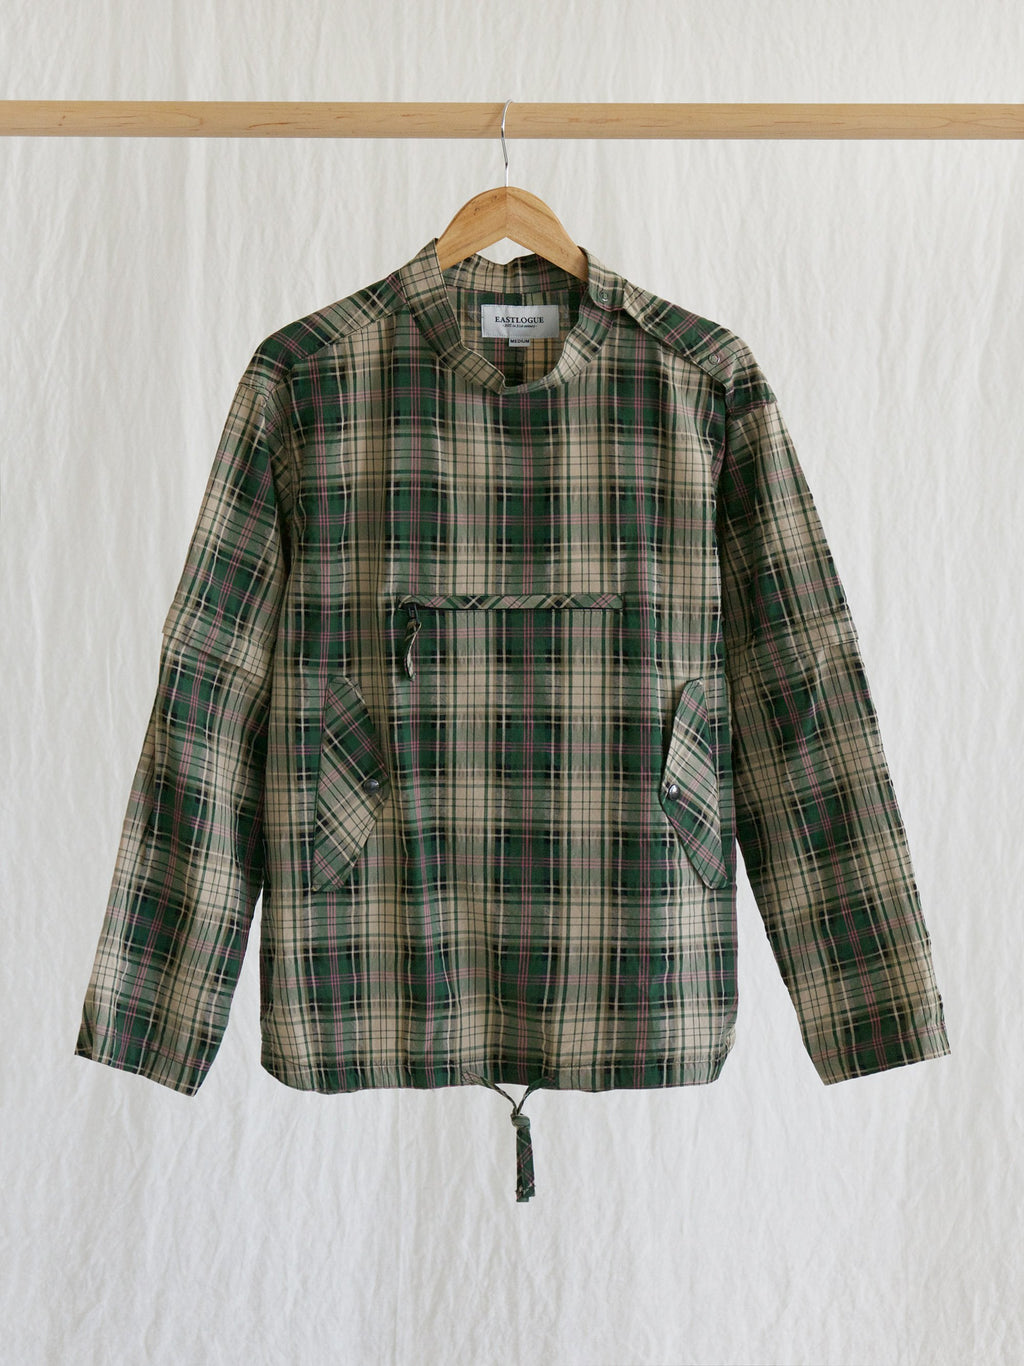 Namu Shop - Eastlogue Smock Shirt - Green Multi Check